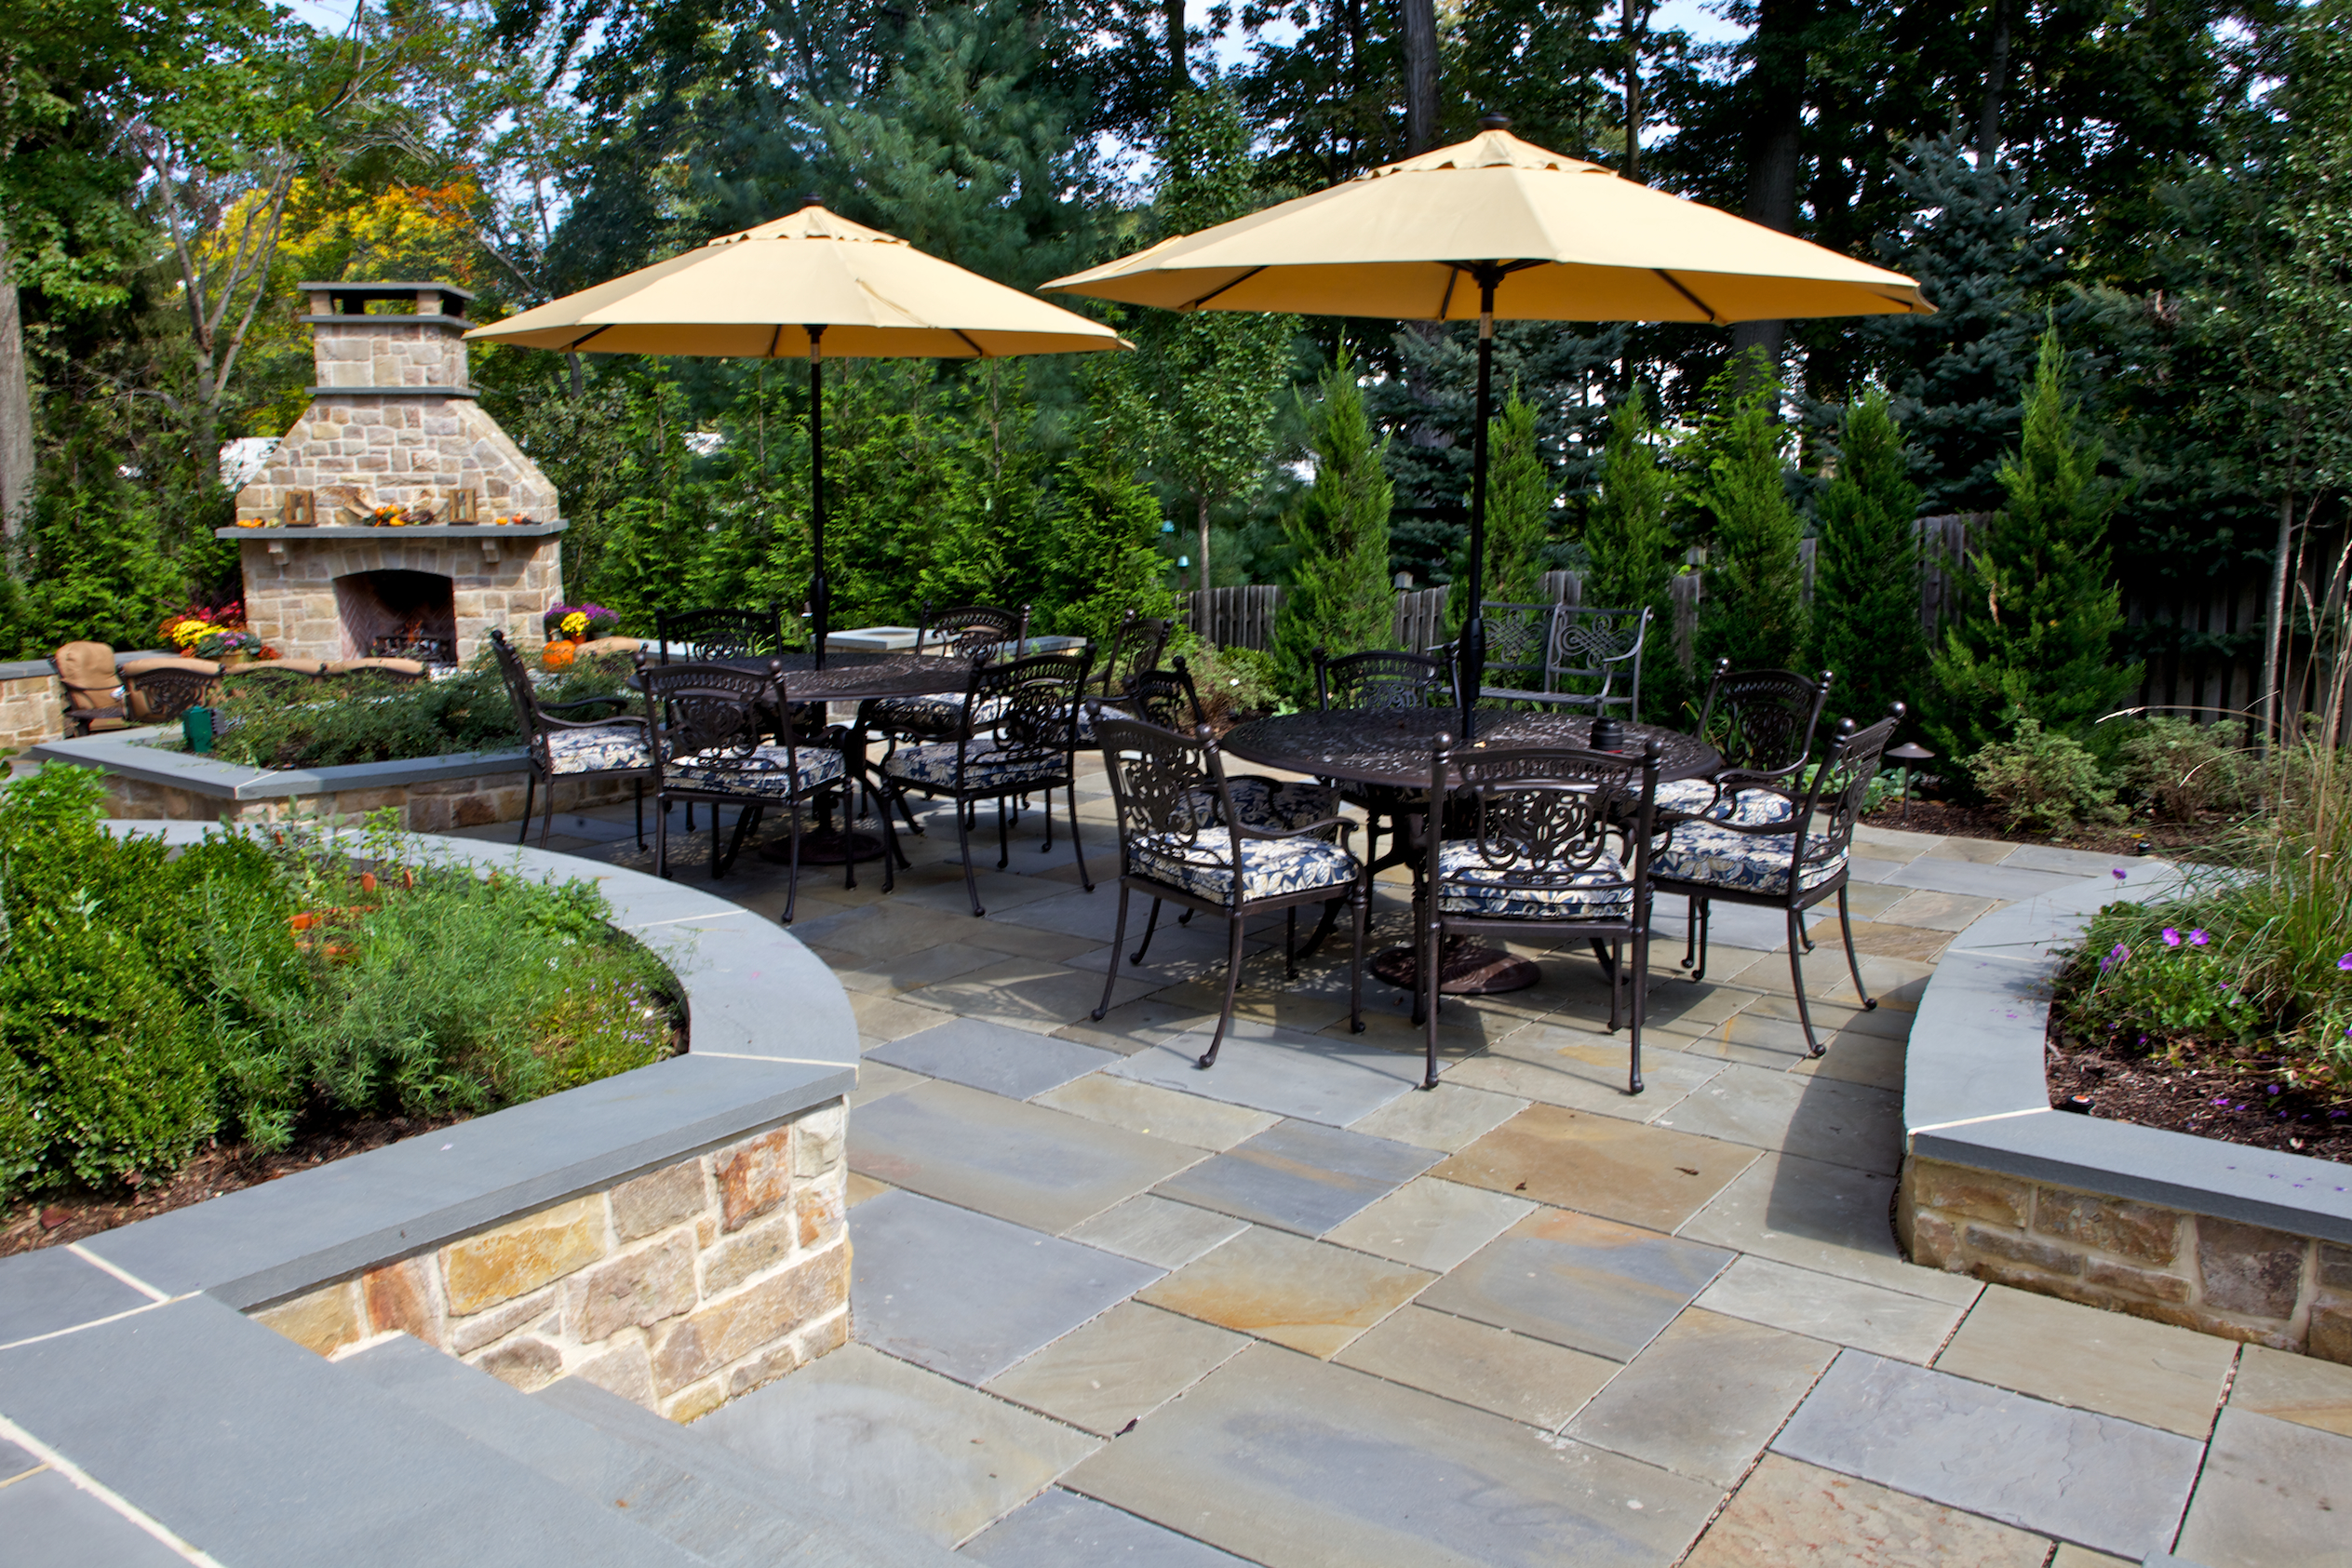 terrific paver outdoor patio ideas with patio furniture - Design Backyard Patio